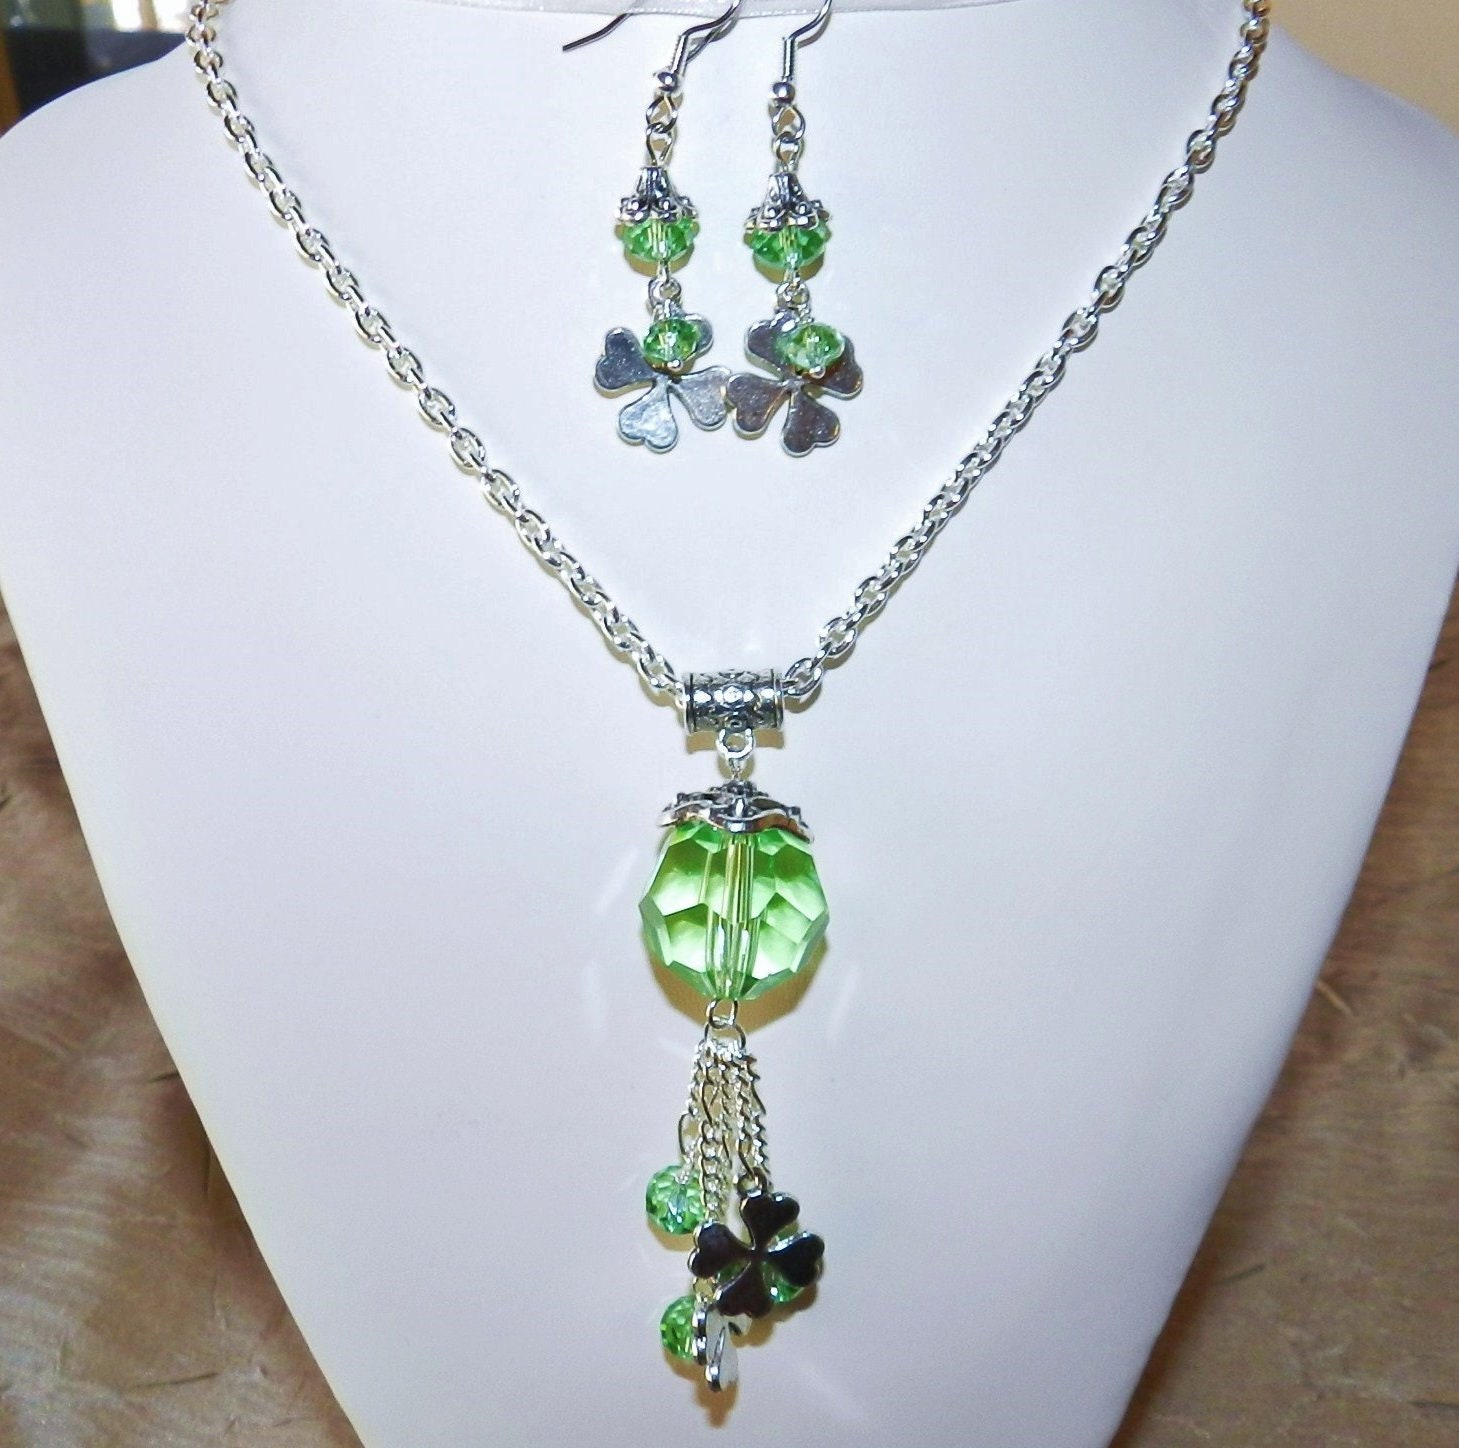 Shamrock,Necklace,and,Earrings,Jewelry,Green_necklace,green_crystal,St_Patrick's_day,Saint_Patrick's_Day,Tassel_necklace,shamrock_charms,shamrock_necklace,shamrock_jewelry,Irish_jewelry,Lucky_Clover,St_Paddys_day,4_leaf_clover,Glass